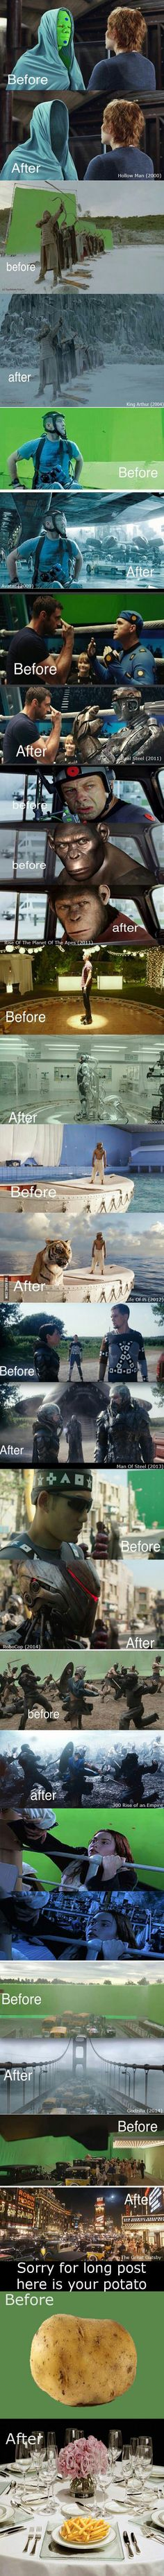 Before and after effects images for fellow 9gaggers..